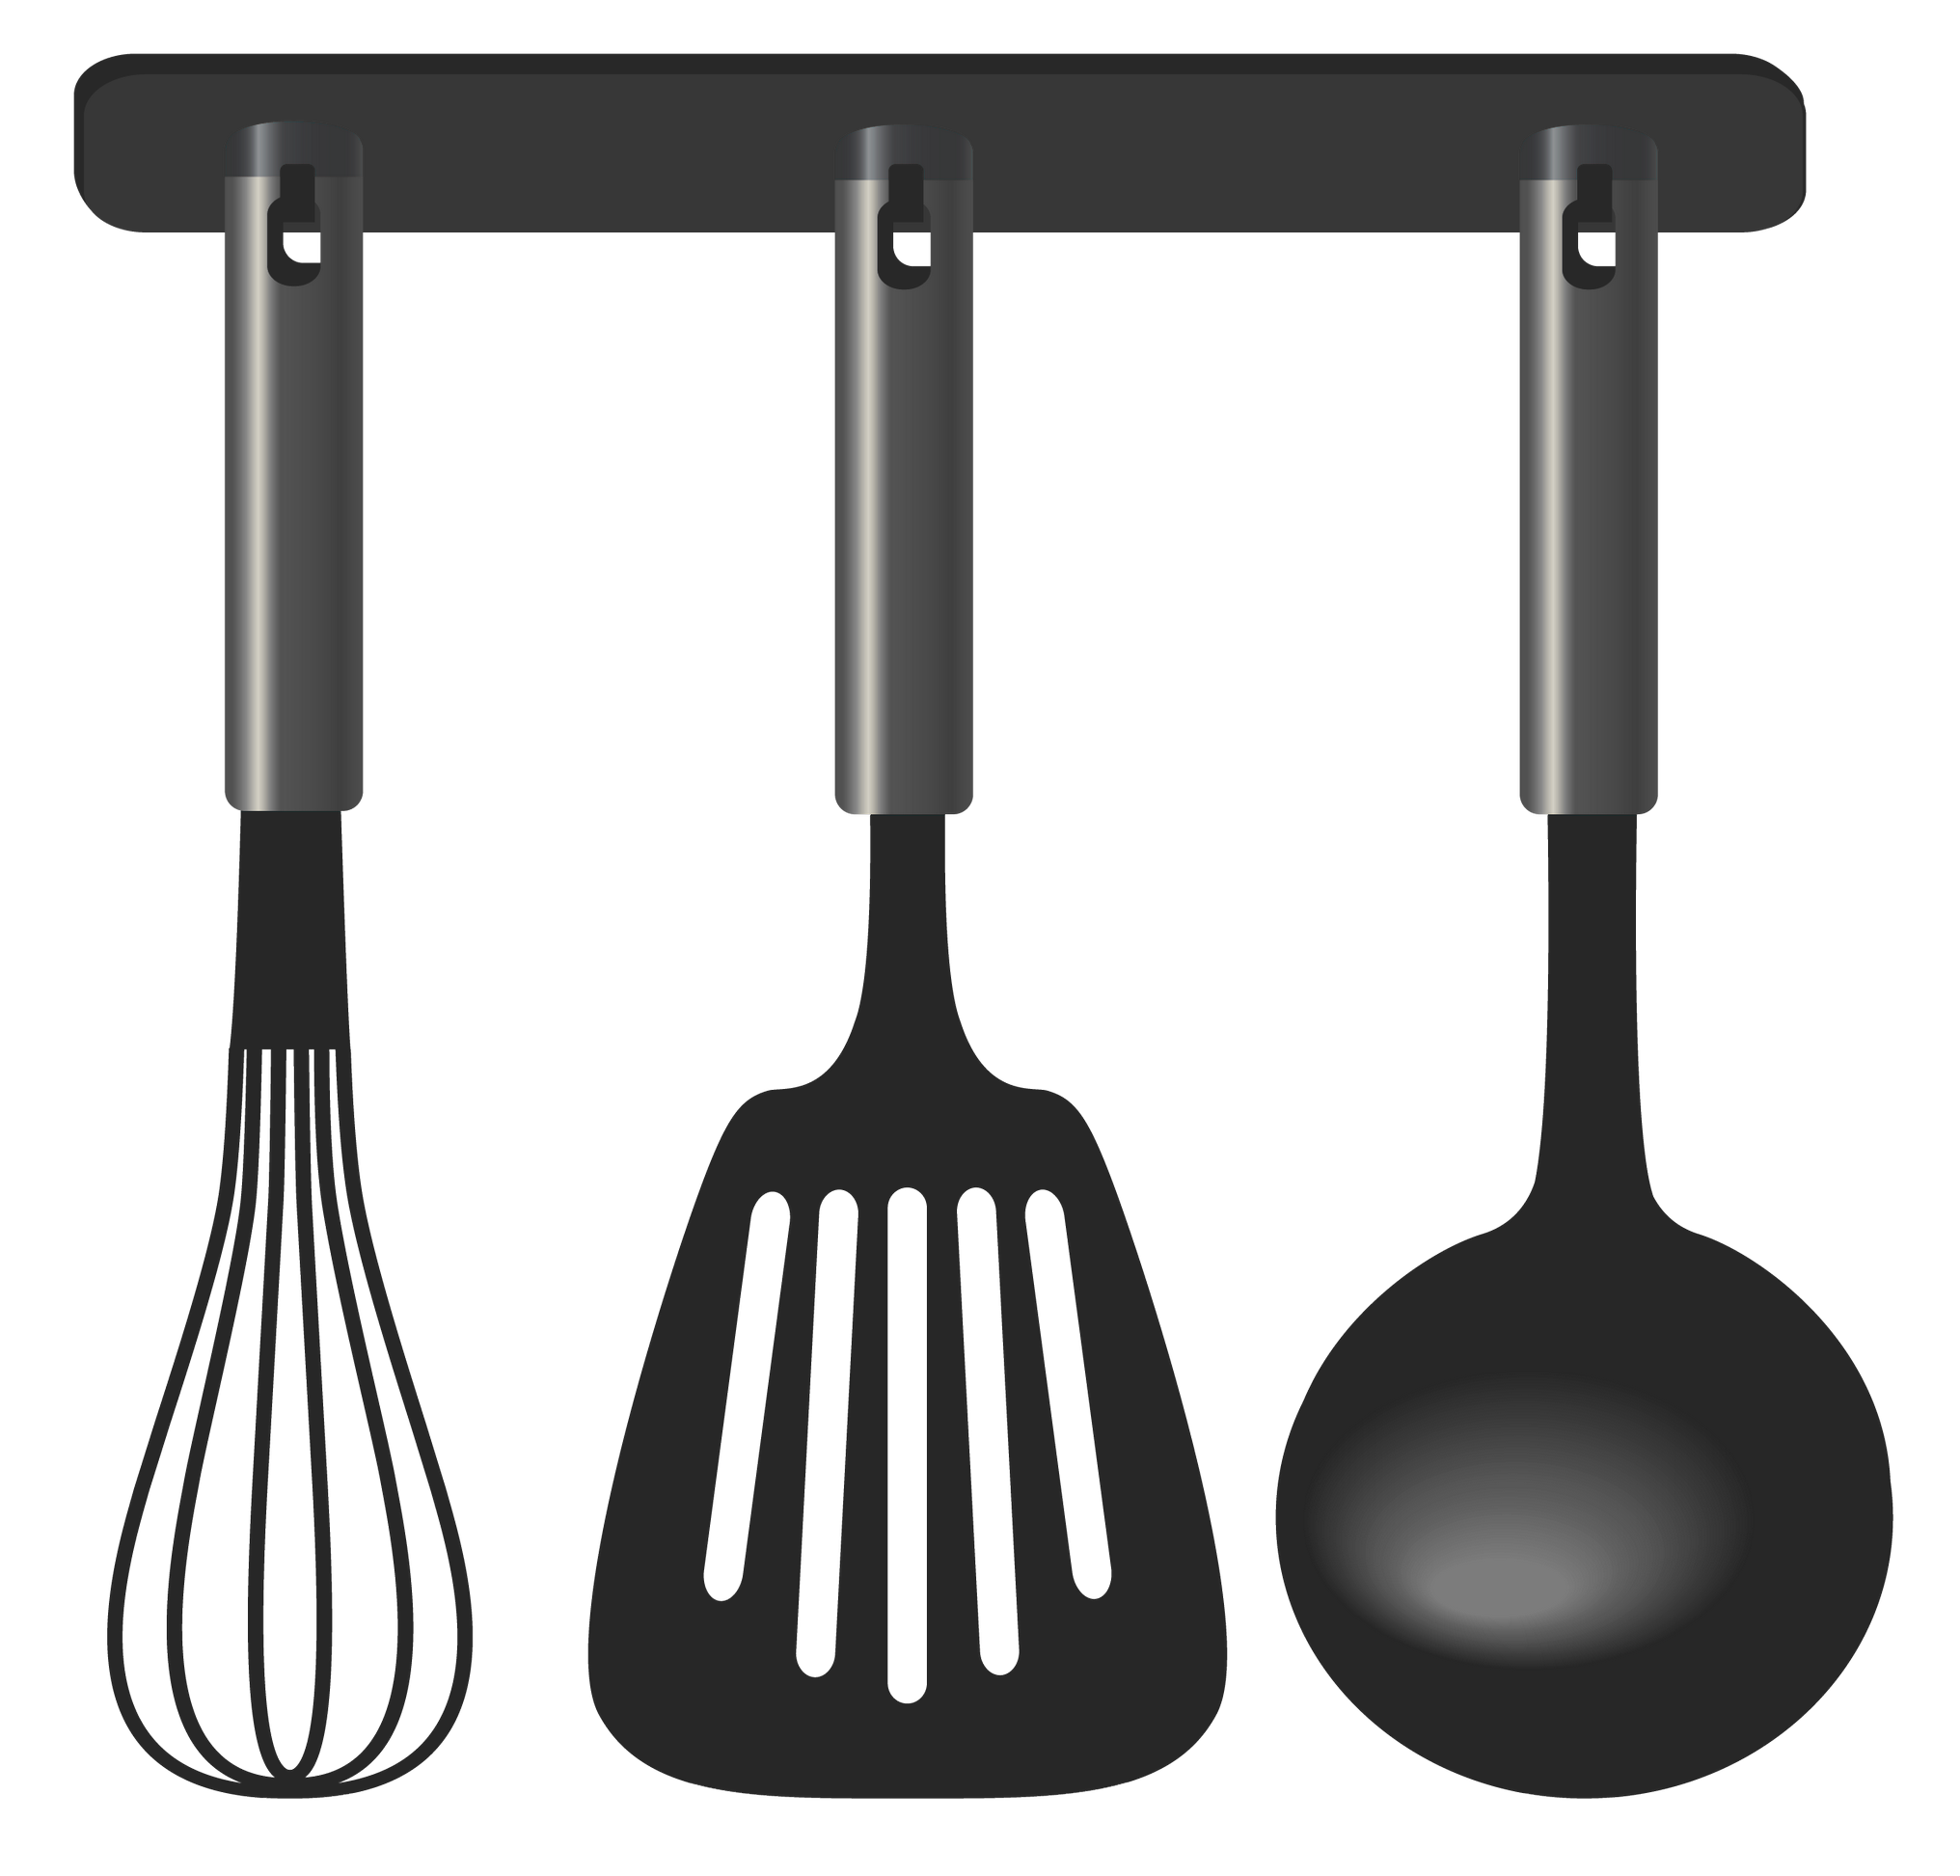 Black tool set png. Clipart kitchen kichen